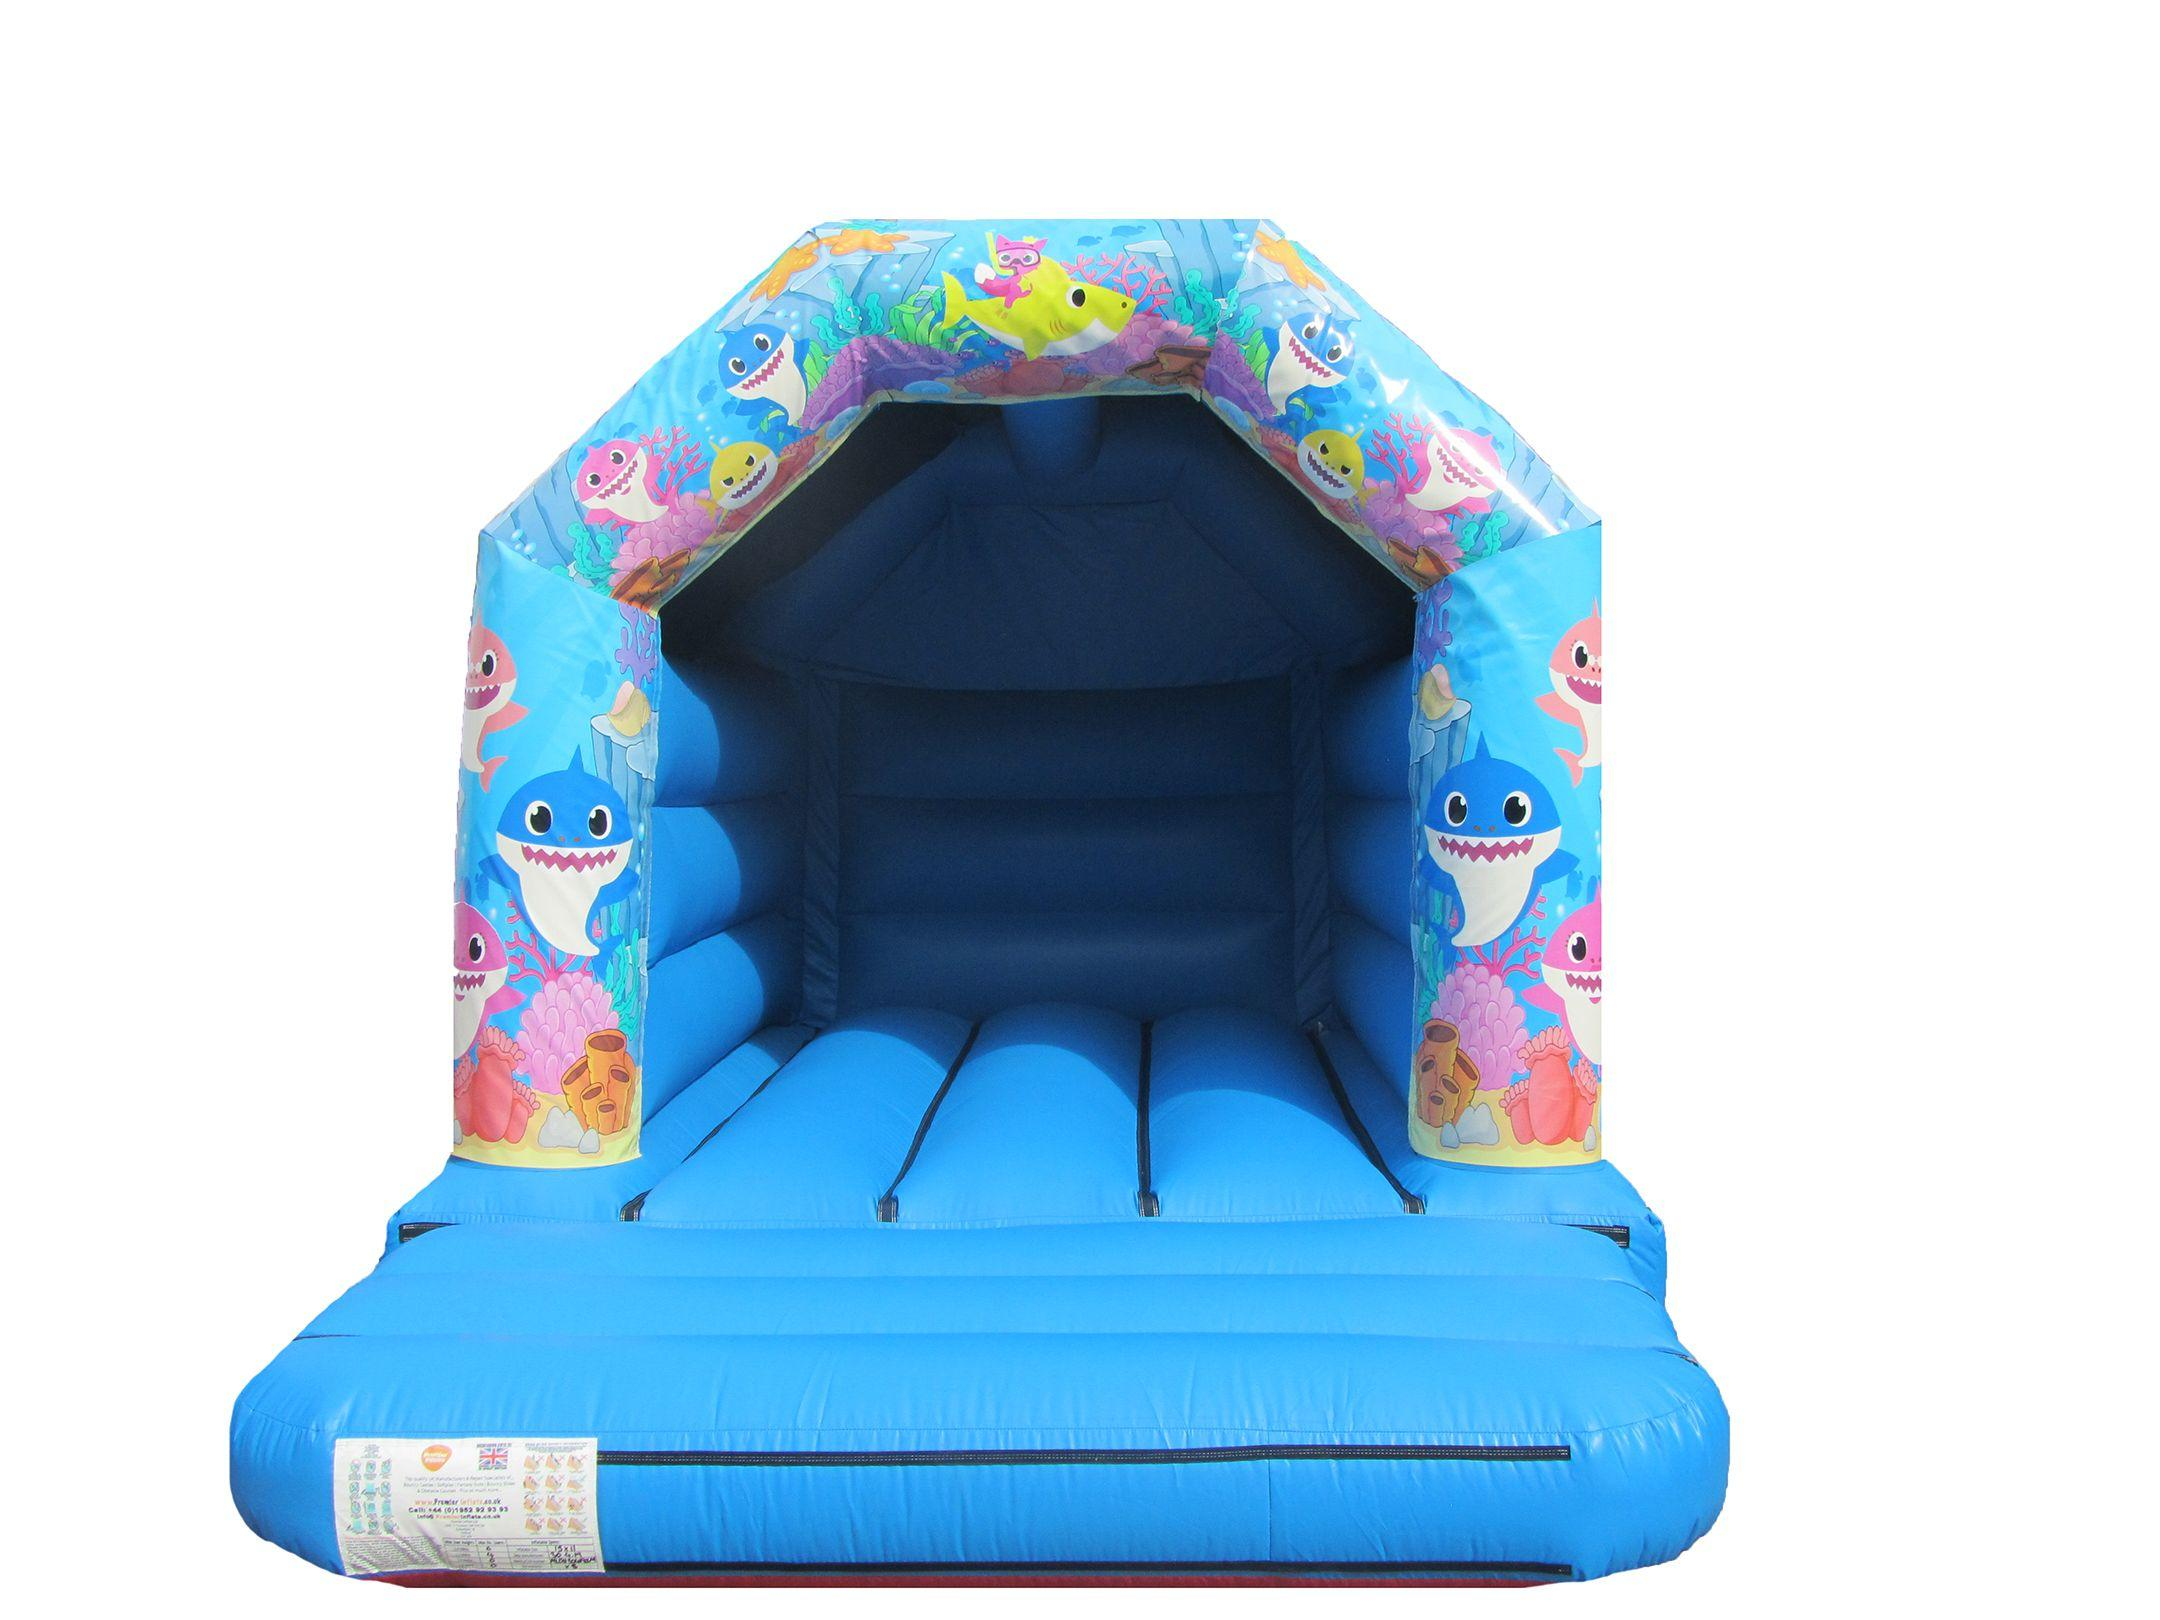 Themed Commercial Bouncy Castle